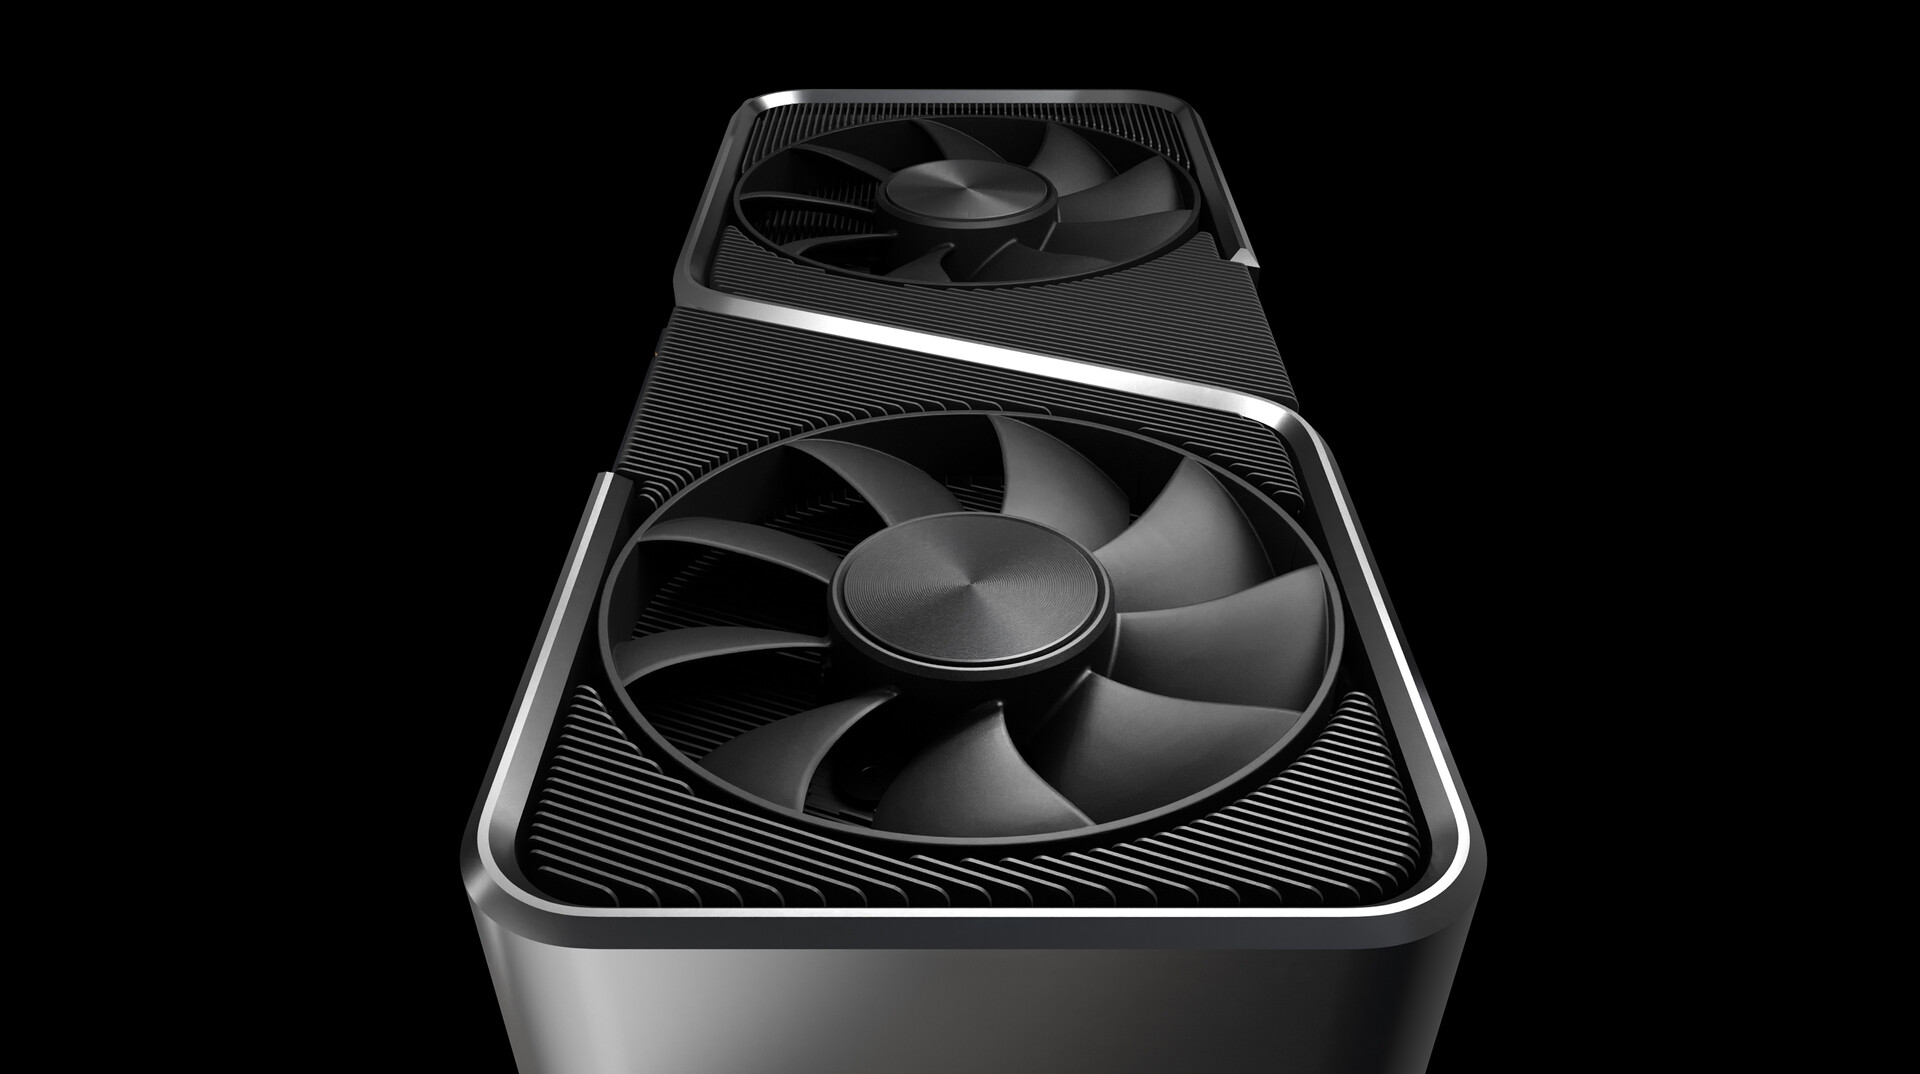 Nvidia Geforce Rtx 3060 Ti Specs Leak 4864 Cuda Cores And 8gb Of Gddr6 At 448 Gb S Could Max Out Cyberpunk 2077 And Watch Dogs Legion At 1080p With Ray Tracing Notebookcheck Net News